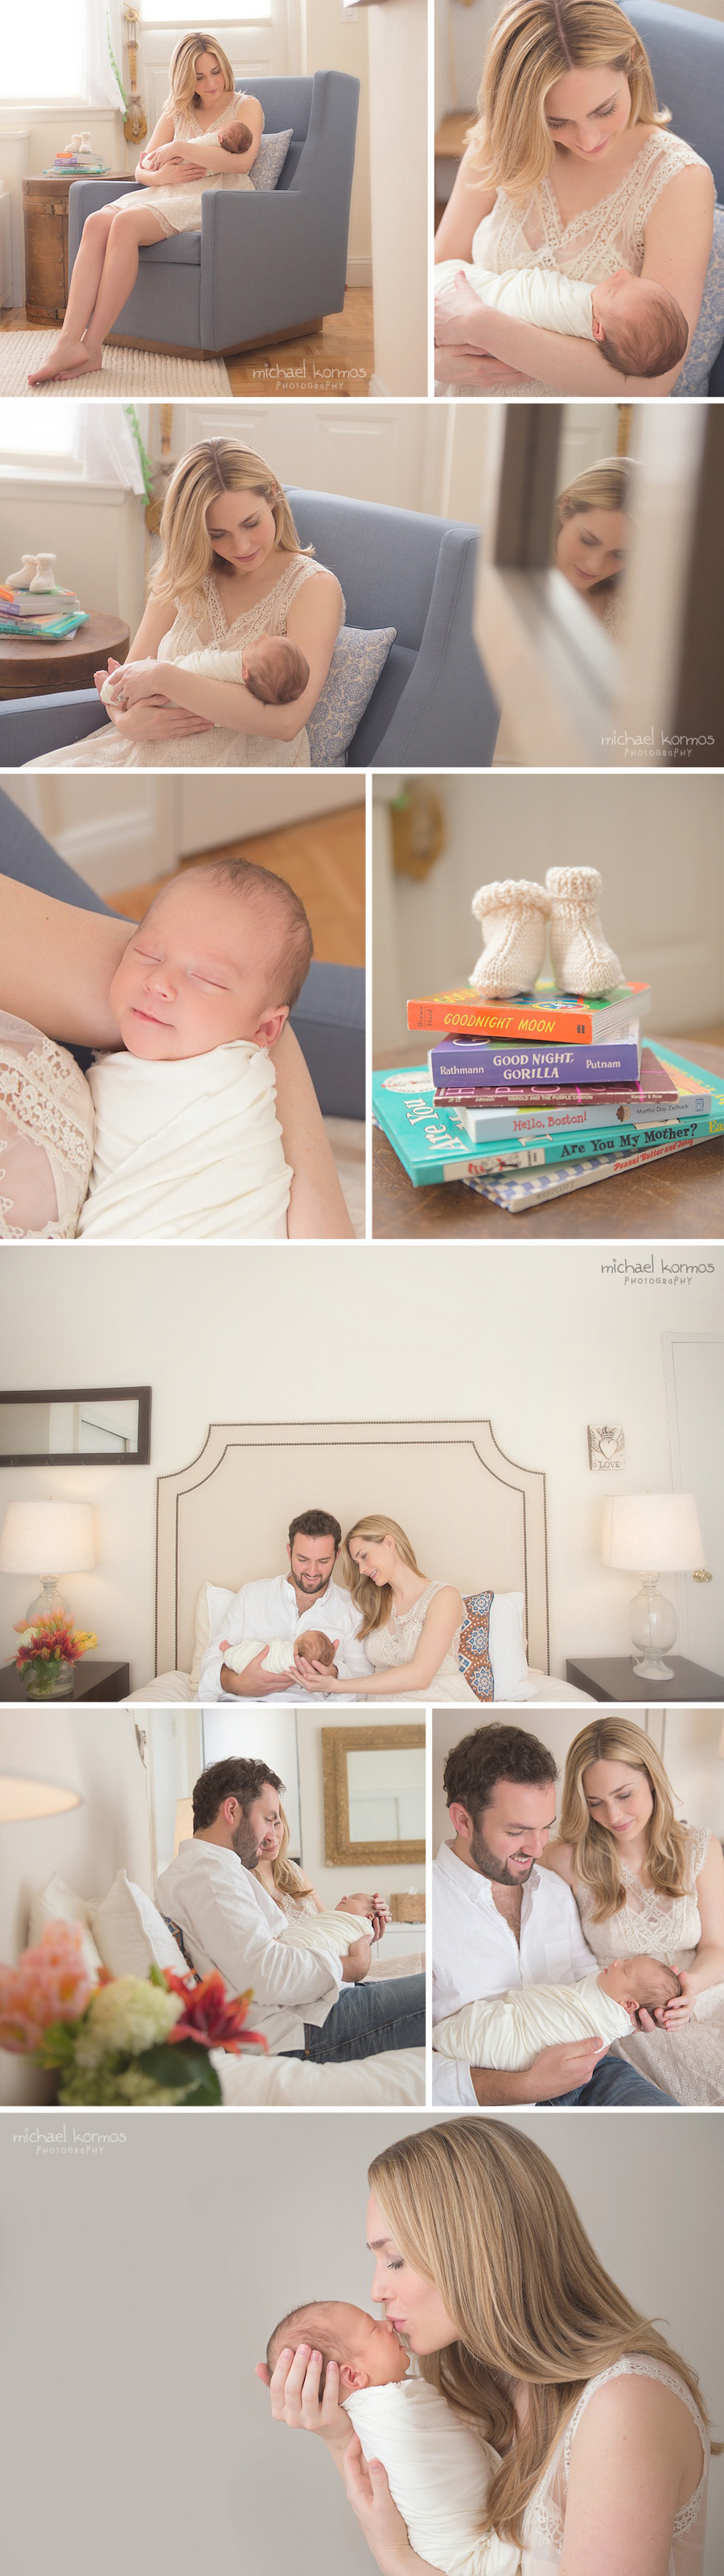 lifestyle newborn photography captured in Manhattan home settings